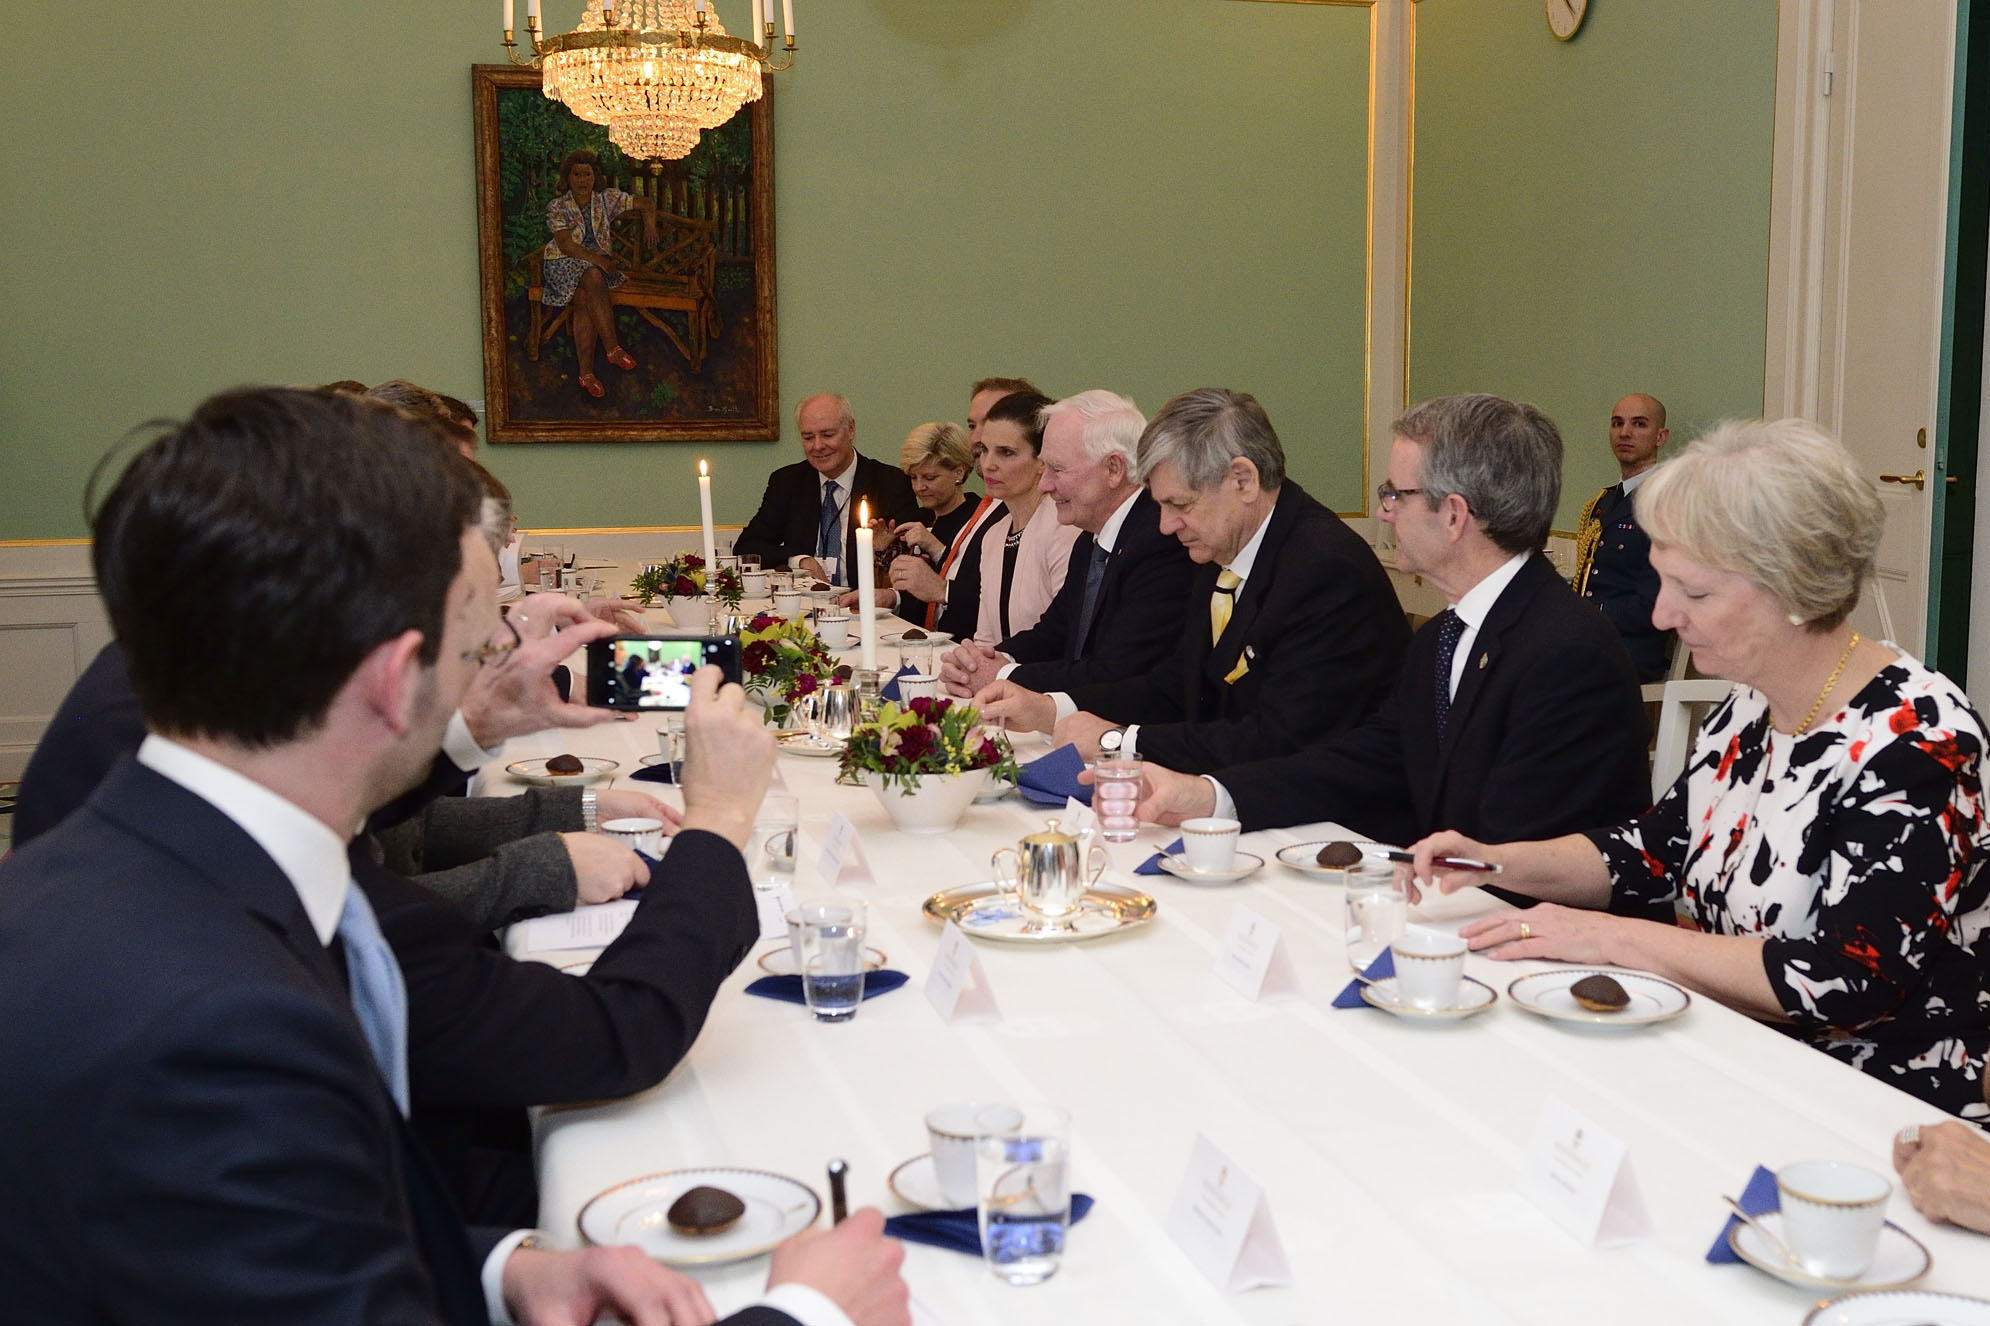 Members of the Canadian delegation and representatives of the Swedish government joined them for an expanded meeting.